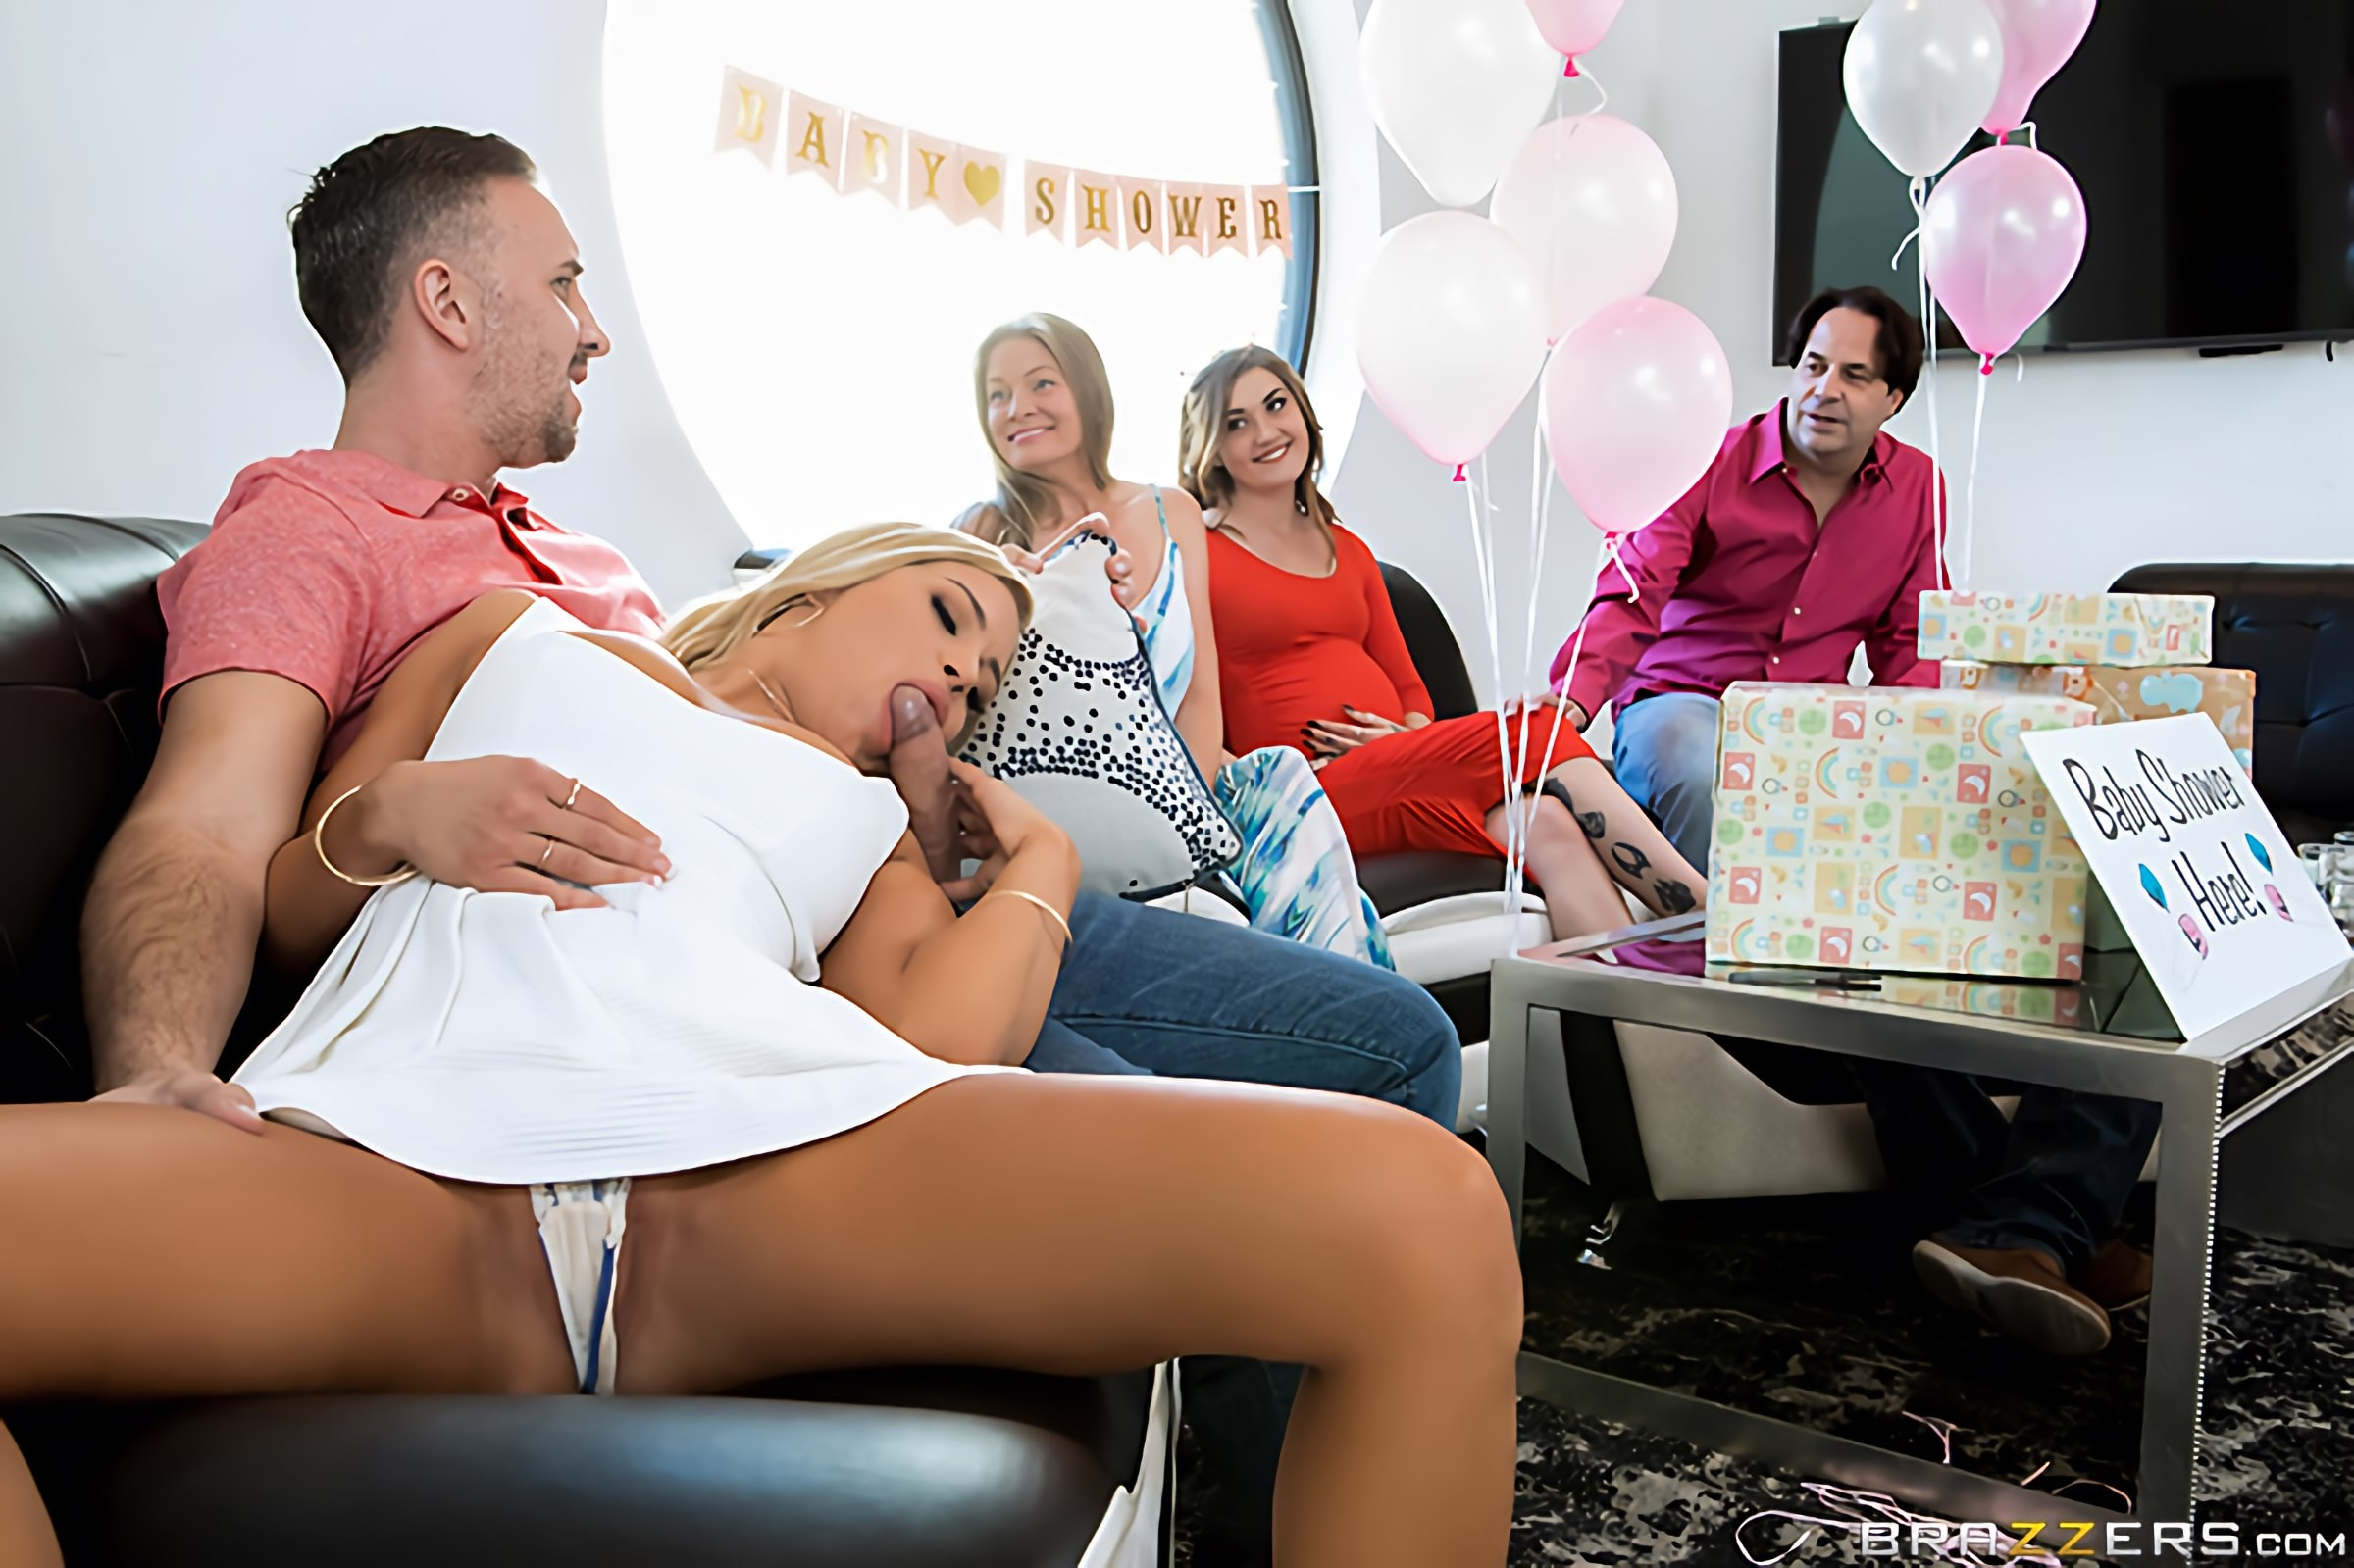 Brazzers 'Busted At The Babyshower' starring Kendall Kayden (photo 1)